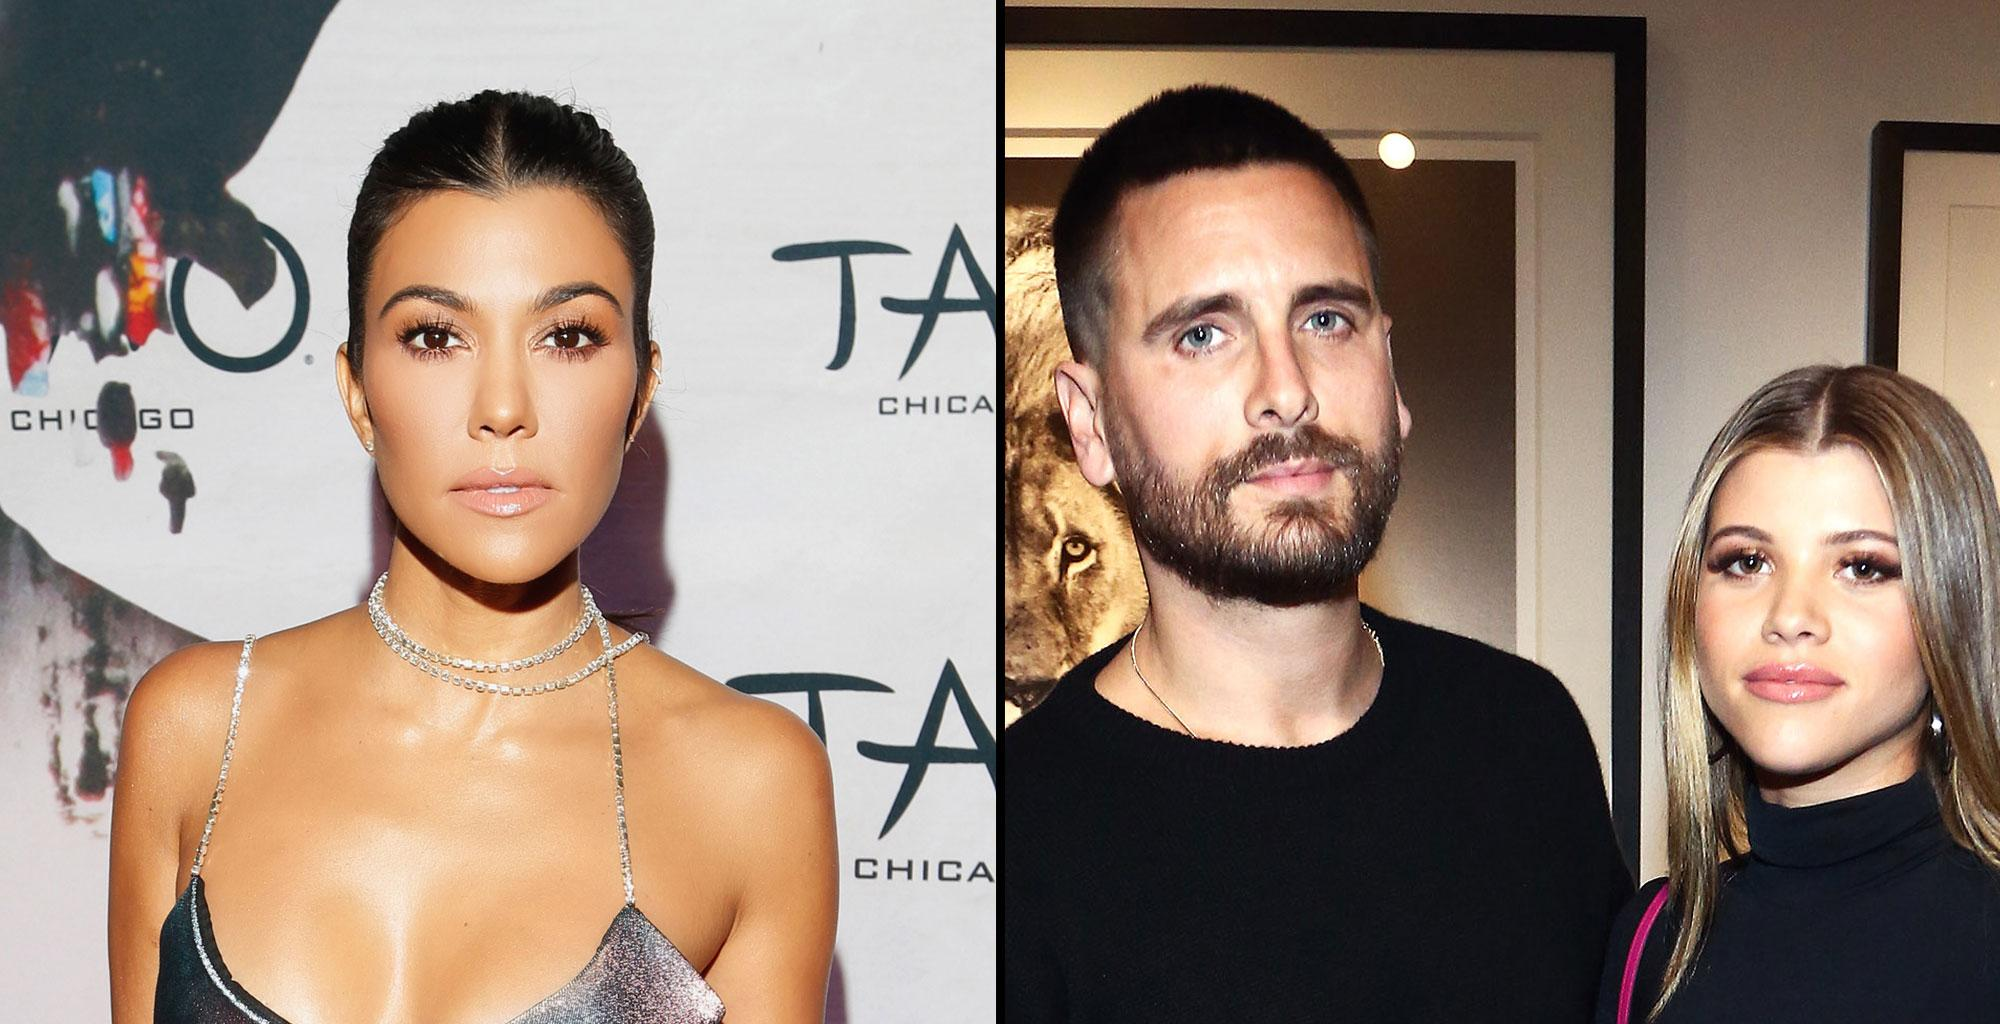 Sofia Richie Reportedly Felt 'Intimidated' By Scott Disick's Baby Mama, Kourtney Kardashian During The Aspen Family Trip - She Wished Kylie Jenner Were There As Well